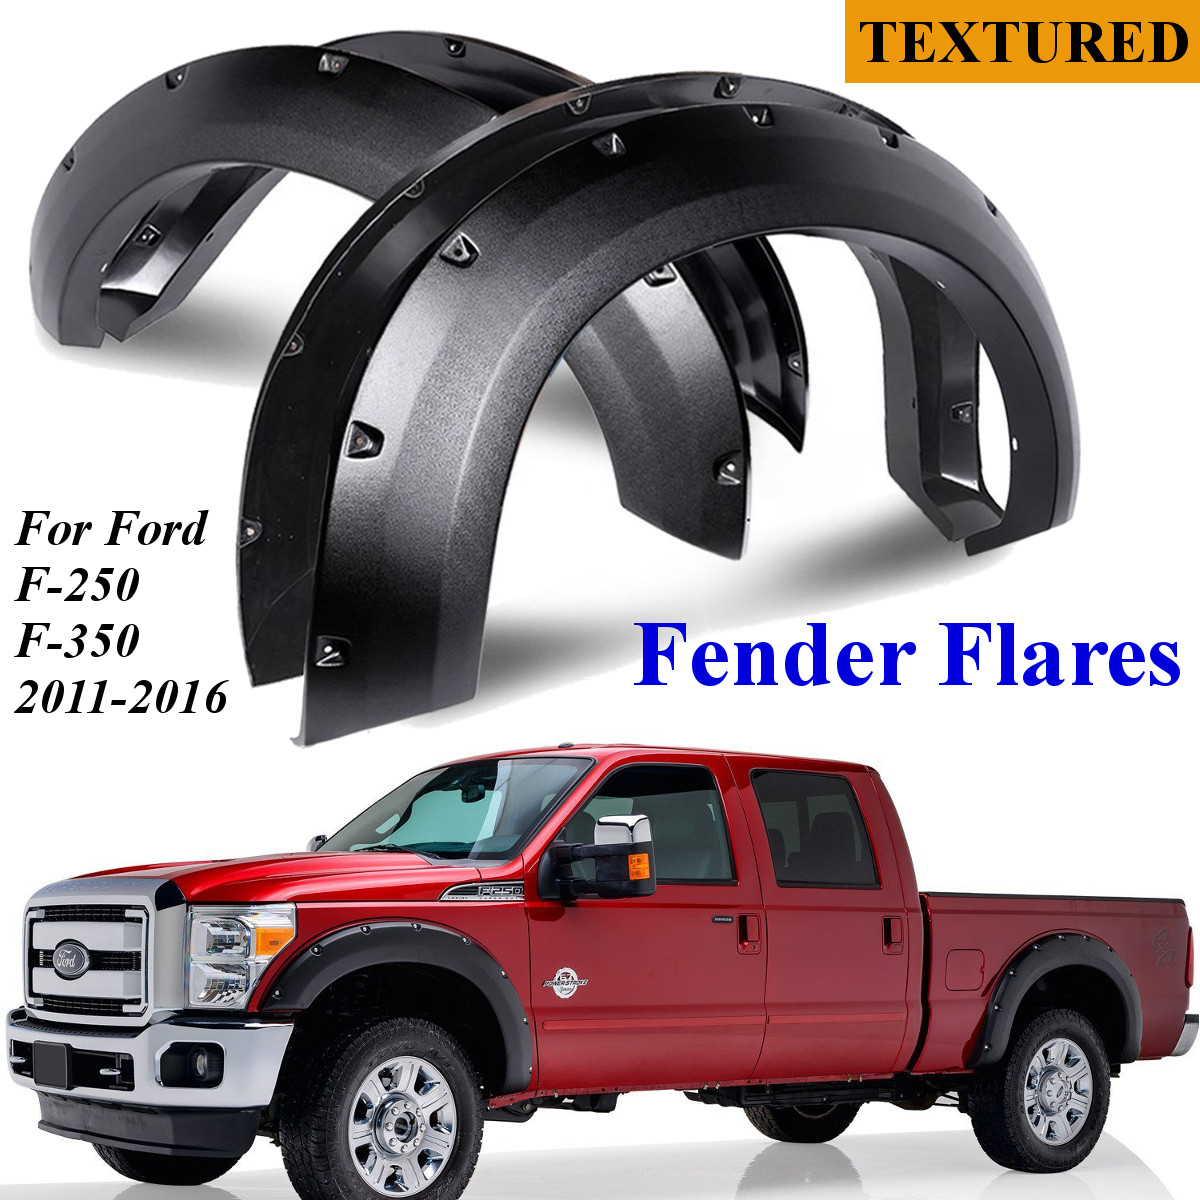 hight resolution of 4pc car pocket rivet style side fender wheel flares for ford f 250 f 350 2011 2016 walmart com